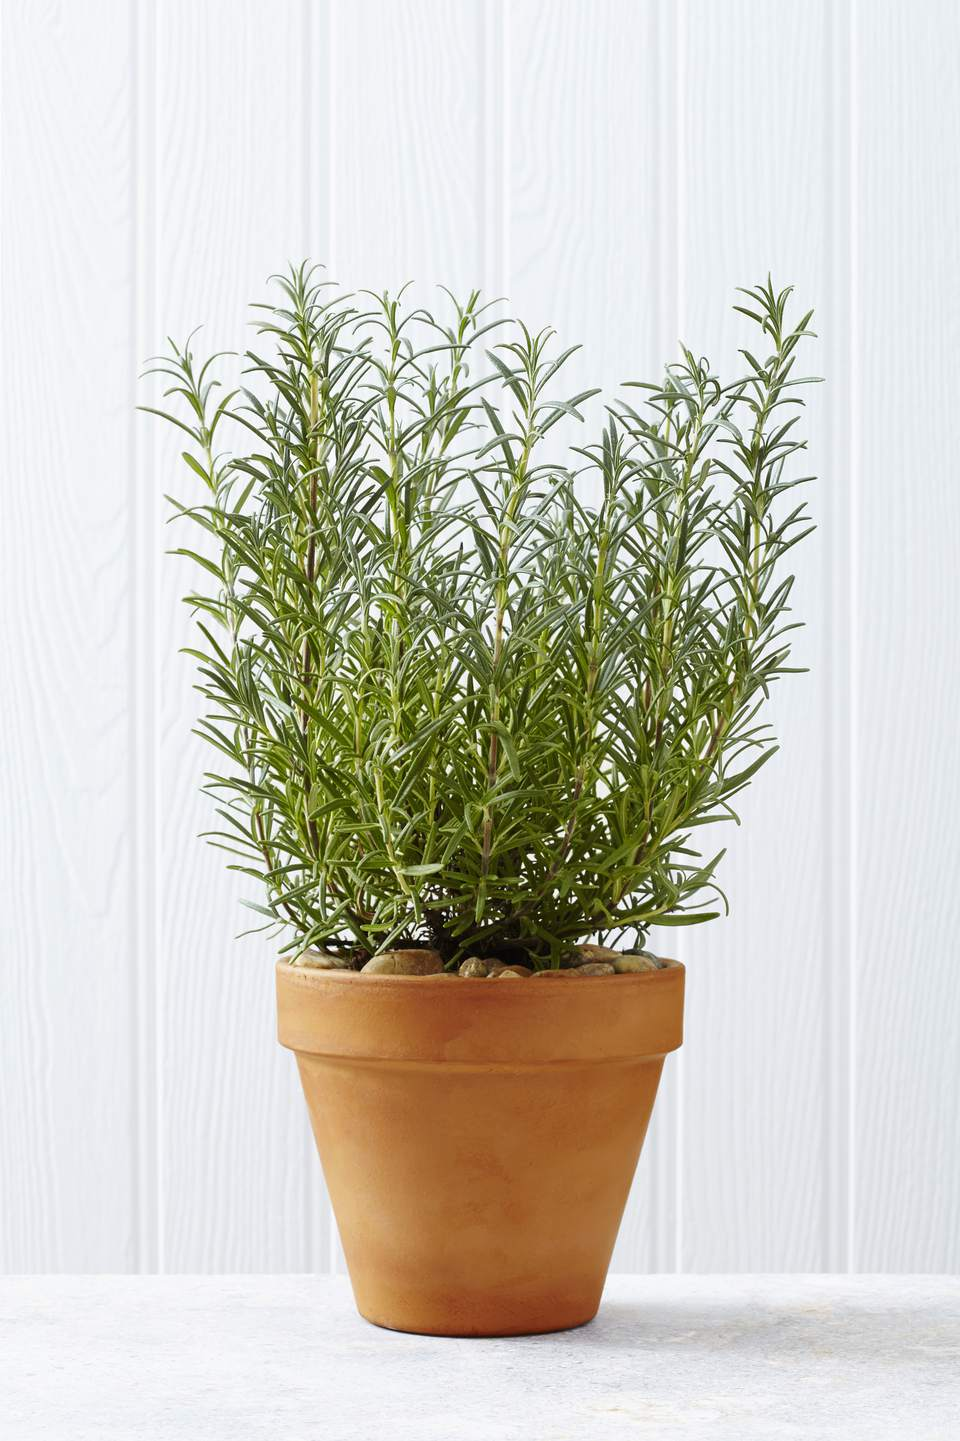 Rosemary plant on a kitchen worktop